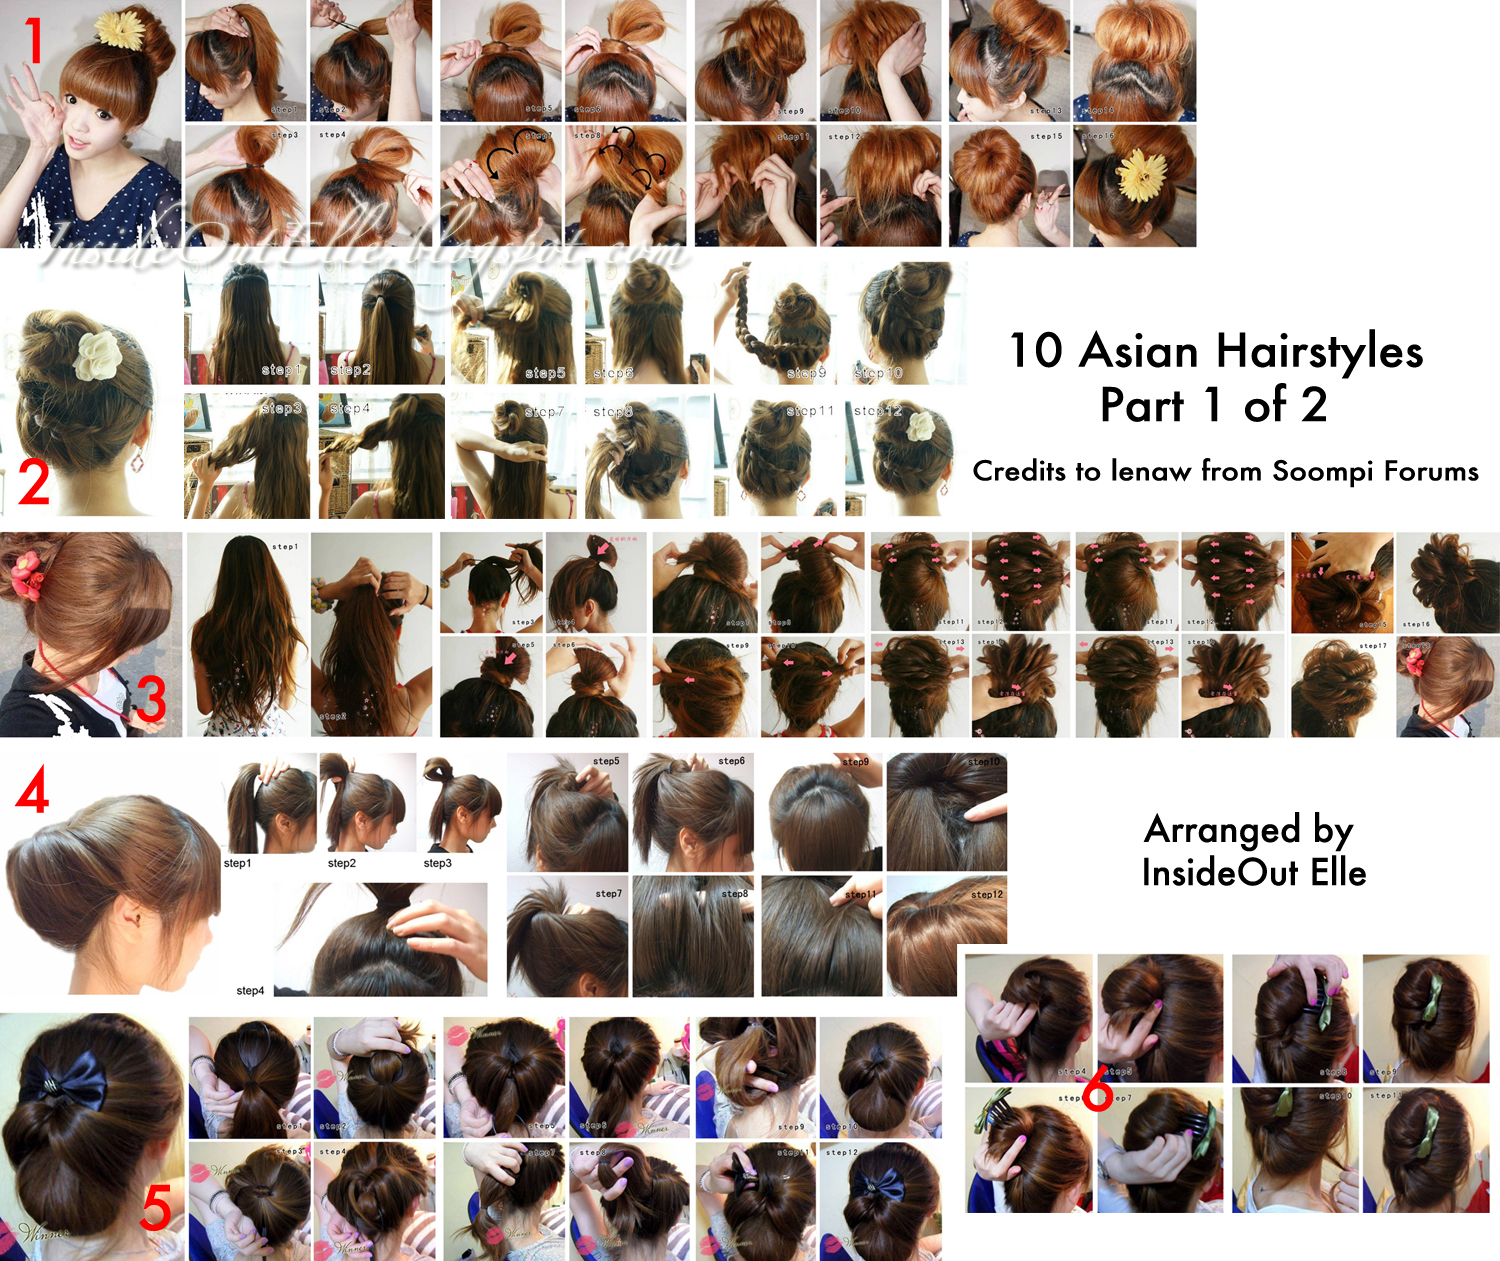 Cool Hairstyles 4 School : Insideoutelle asian hairstyles